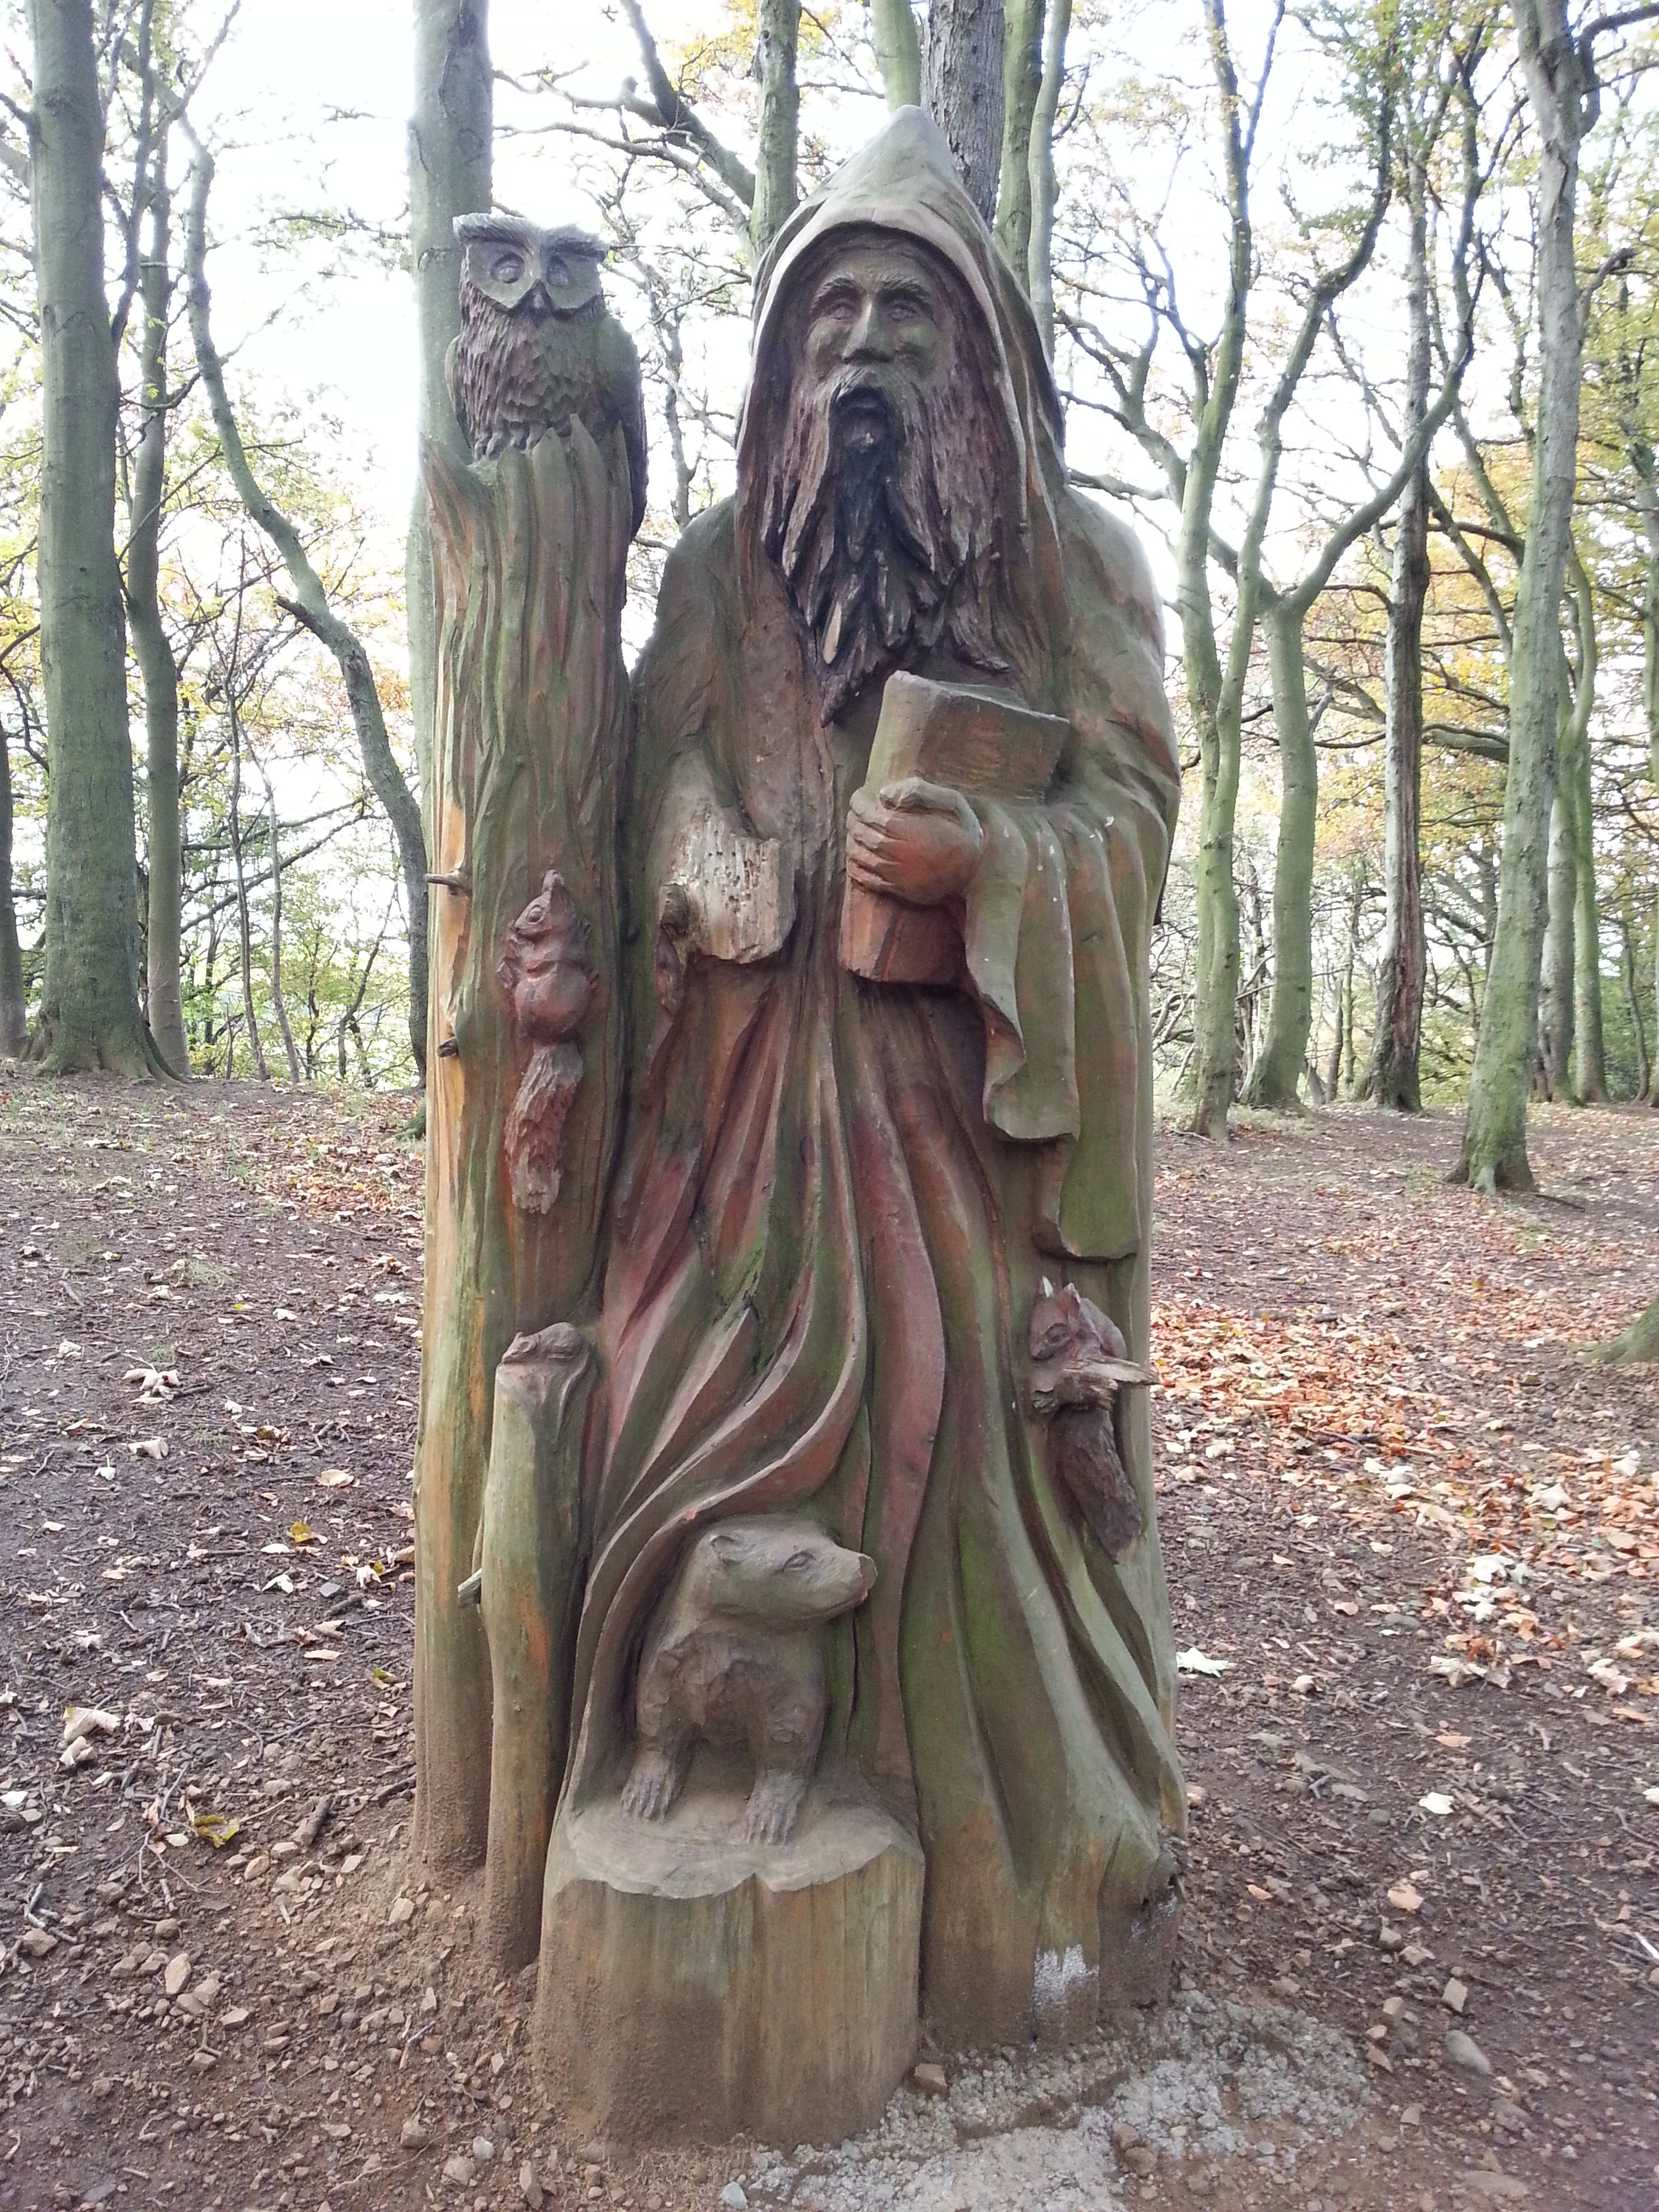 Wizards walk beveridge park kirkcaldy chainsaw carving